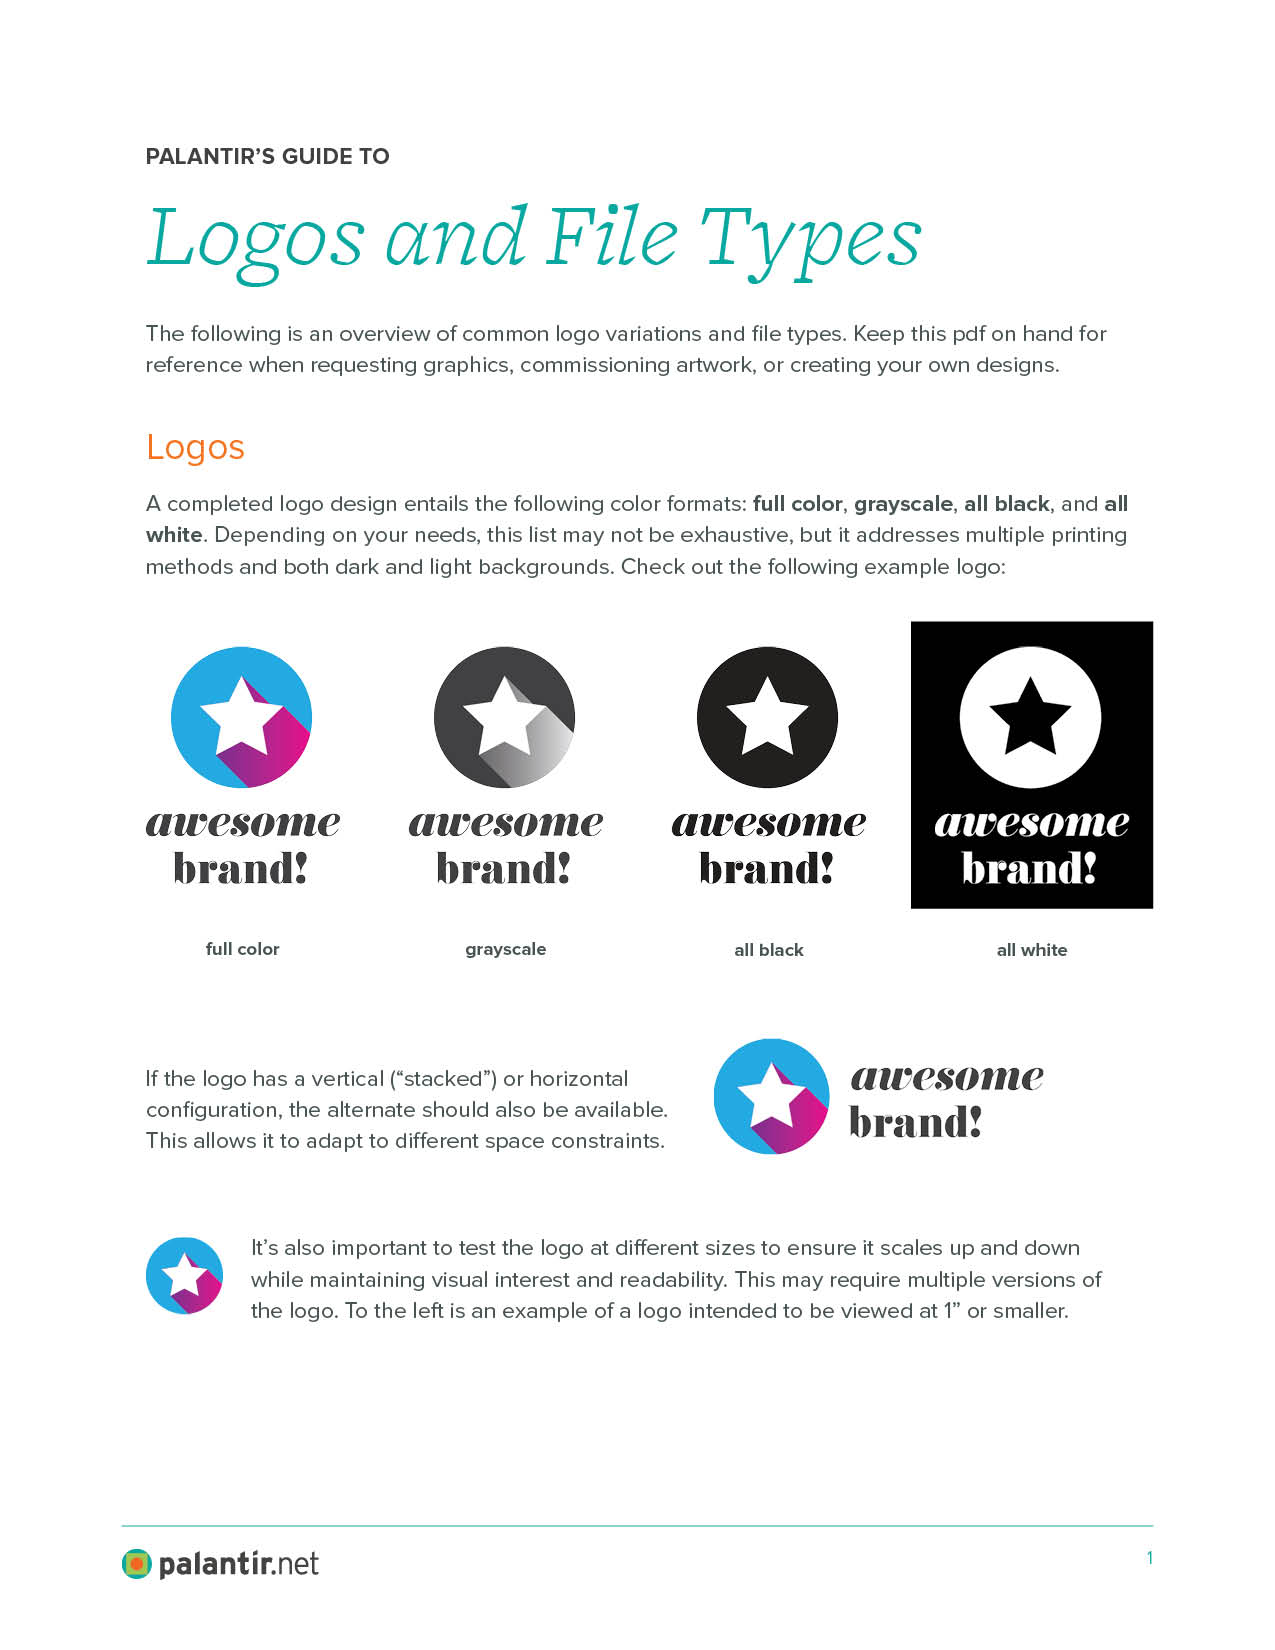 Palantir.net's Guide to Logos and File Types